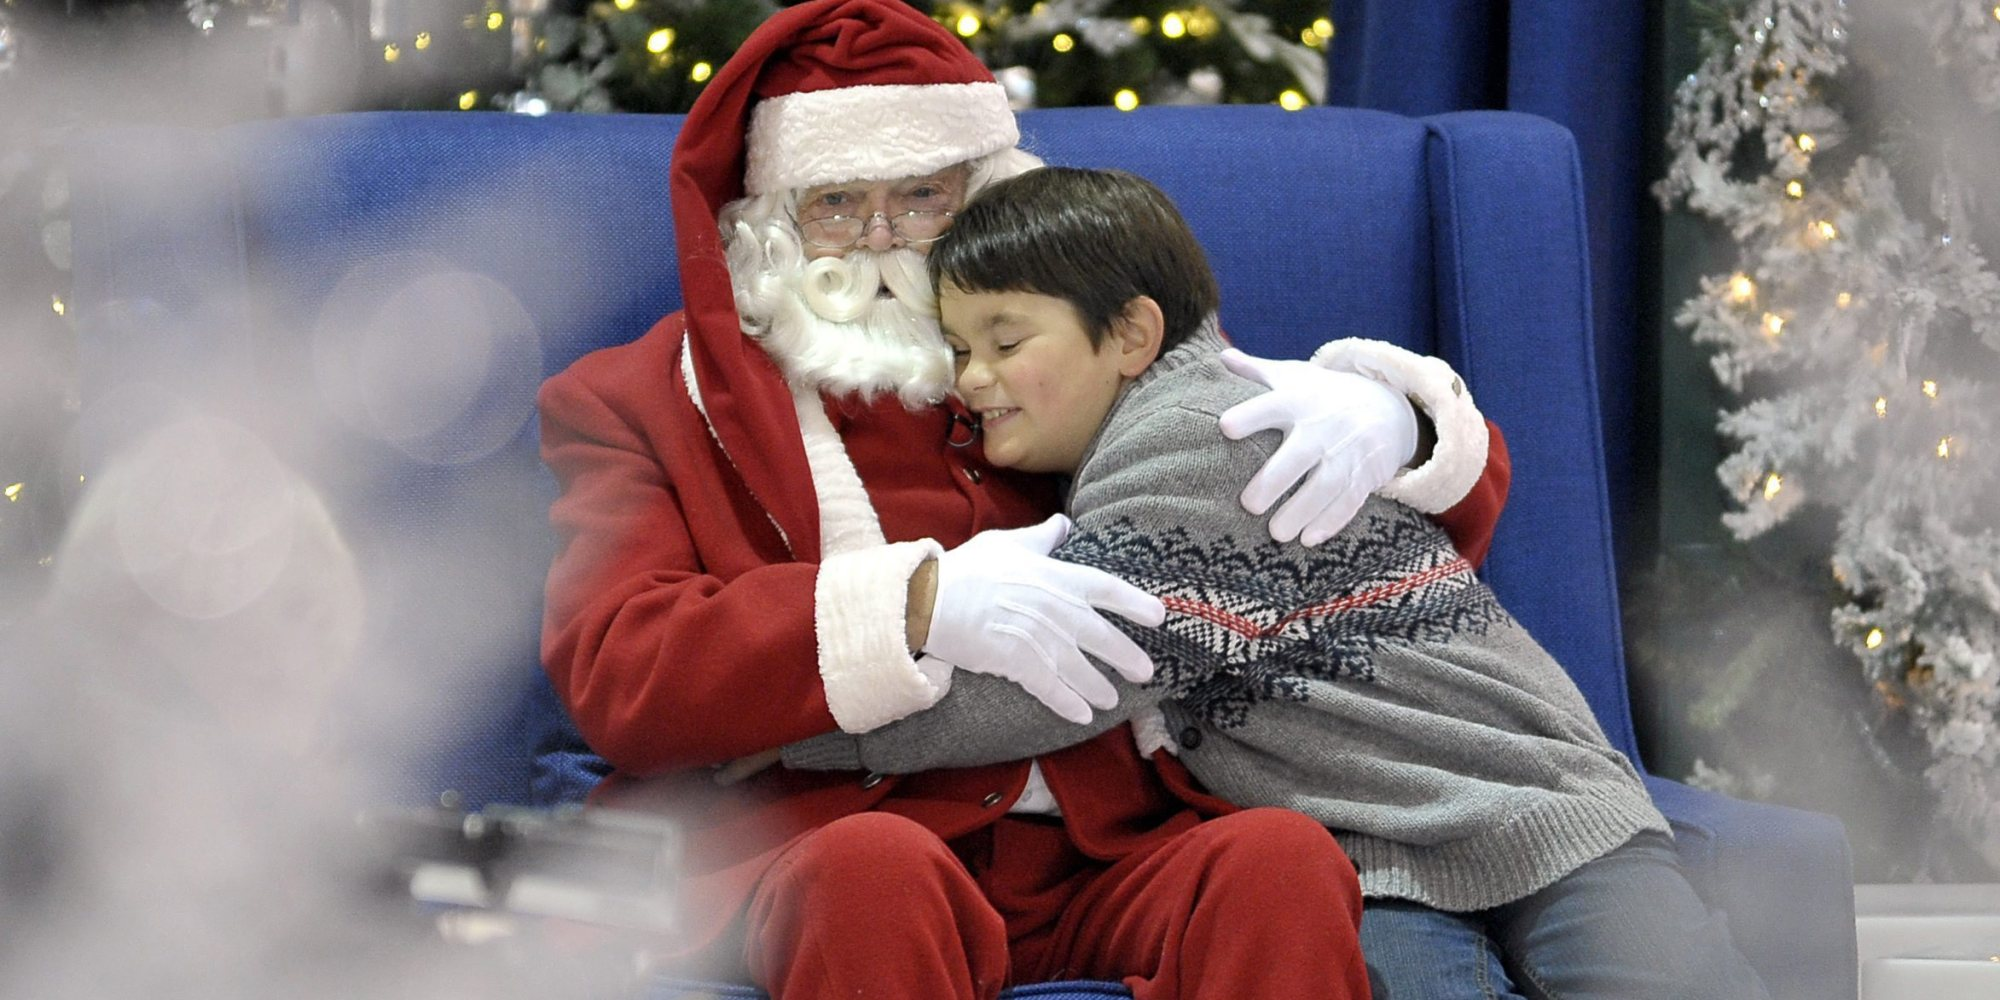 malls now offer quiet santa visits for kids with autism photo huffpost - Santa Claus With Kids